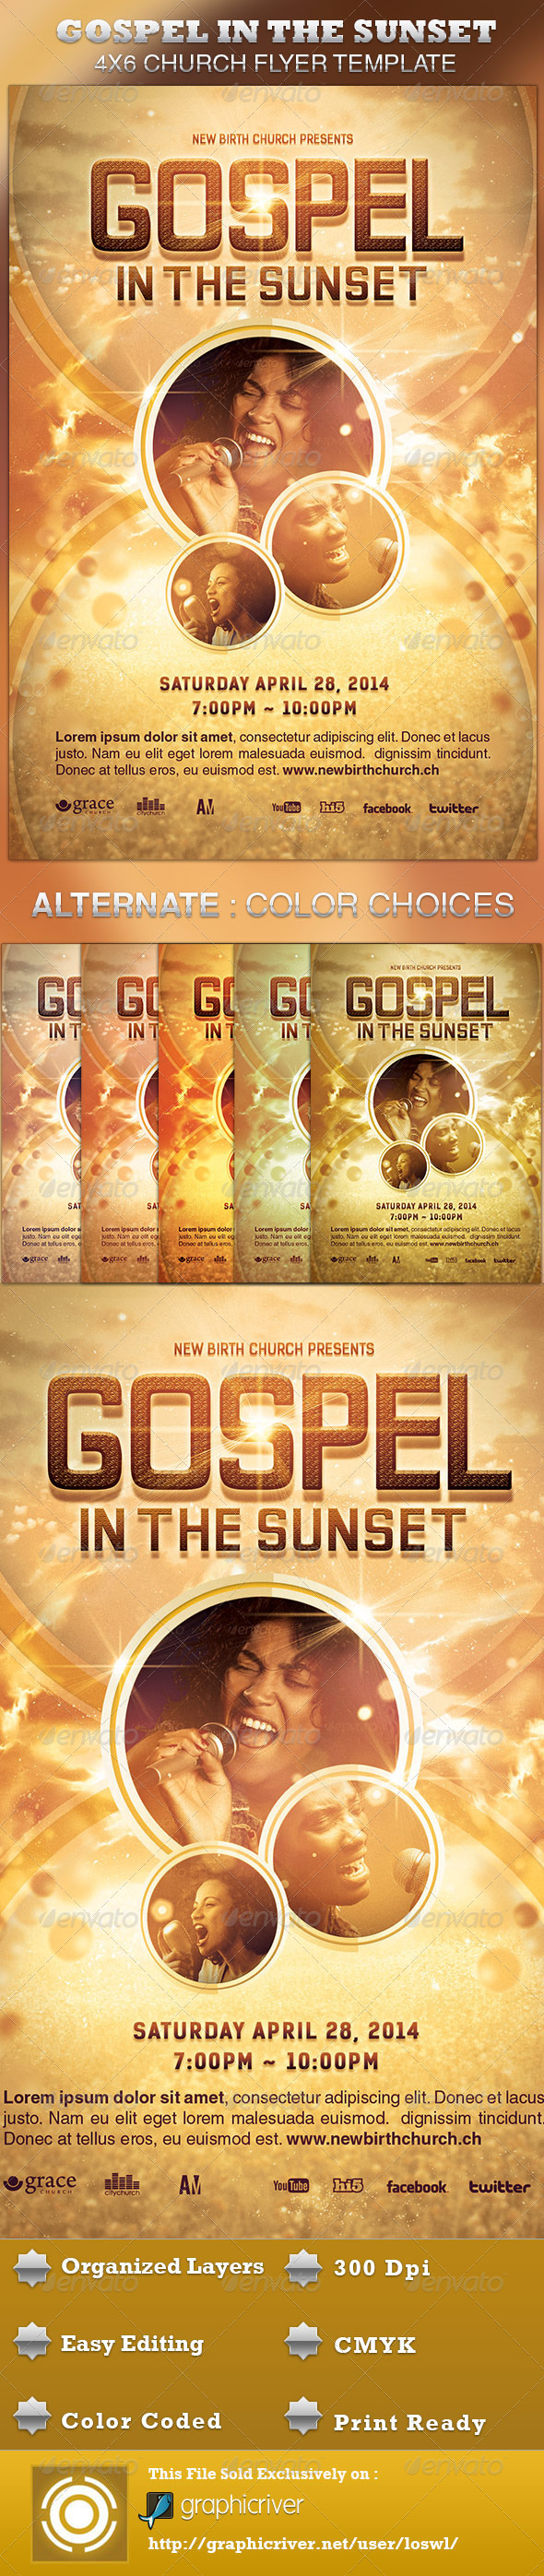 GraphicRiver Gospel in the Sunset Church Flyer Template 4426281